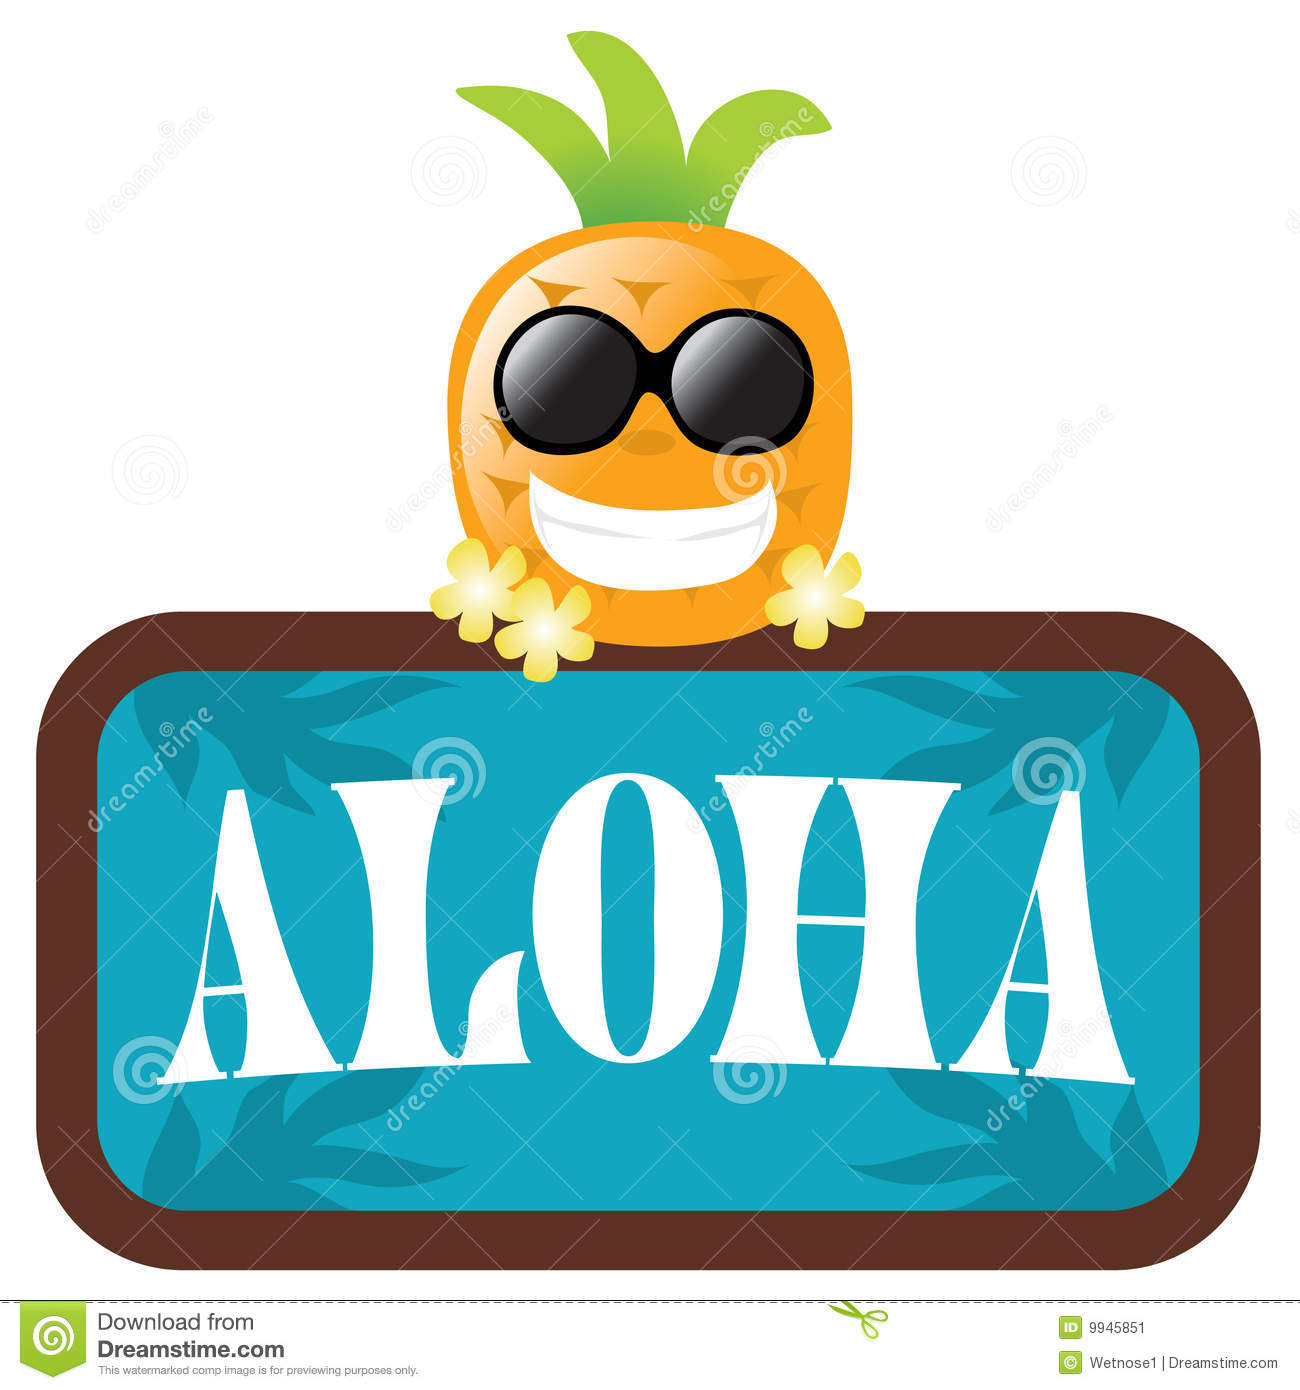 Aloha Sign Stock Image .